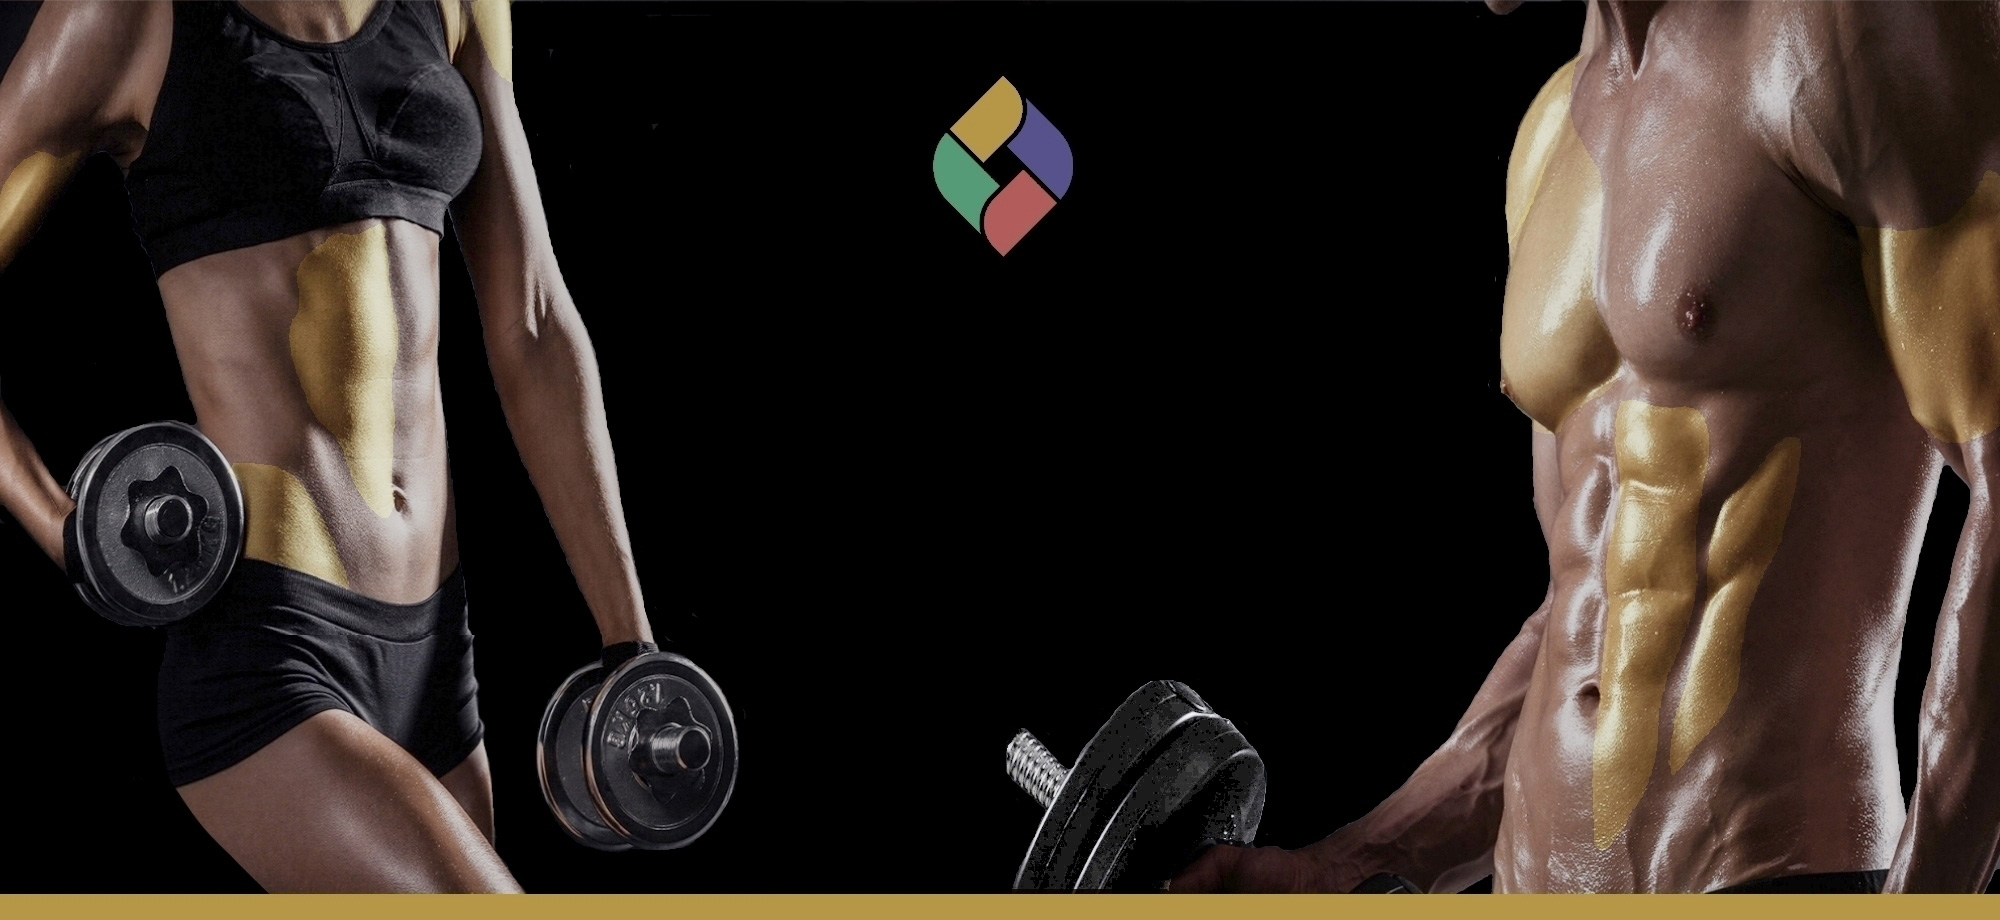 Weight loss with maximum preservation of muscle mass